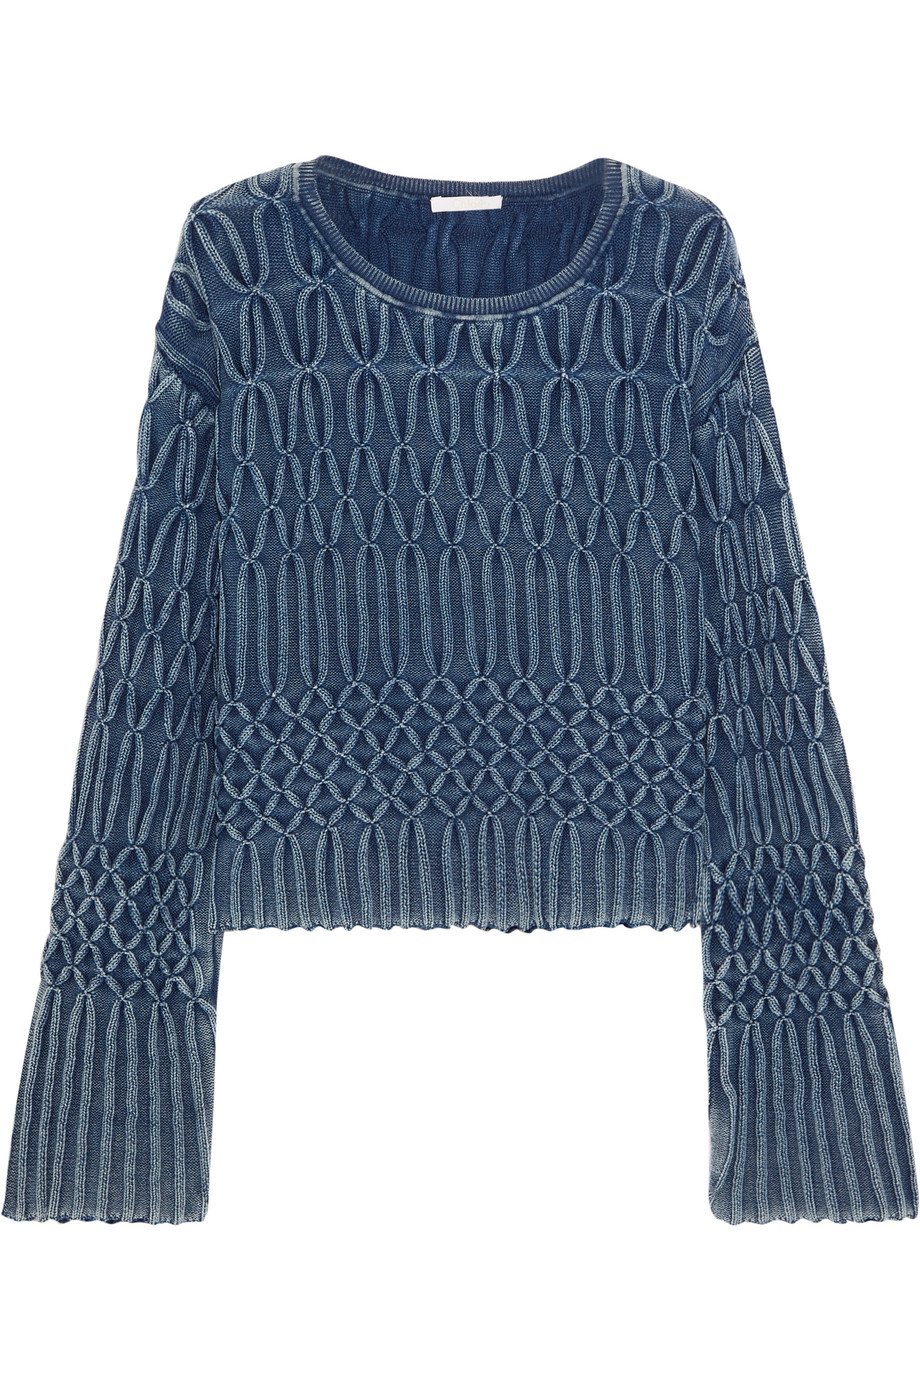 Chloé Cable-Knit Cotton Sweater, Size: XS